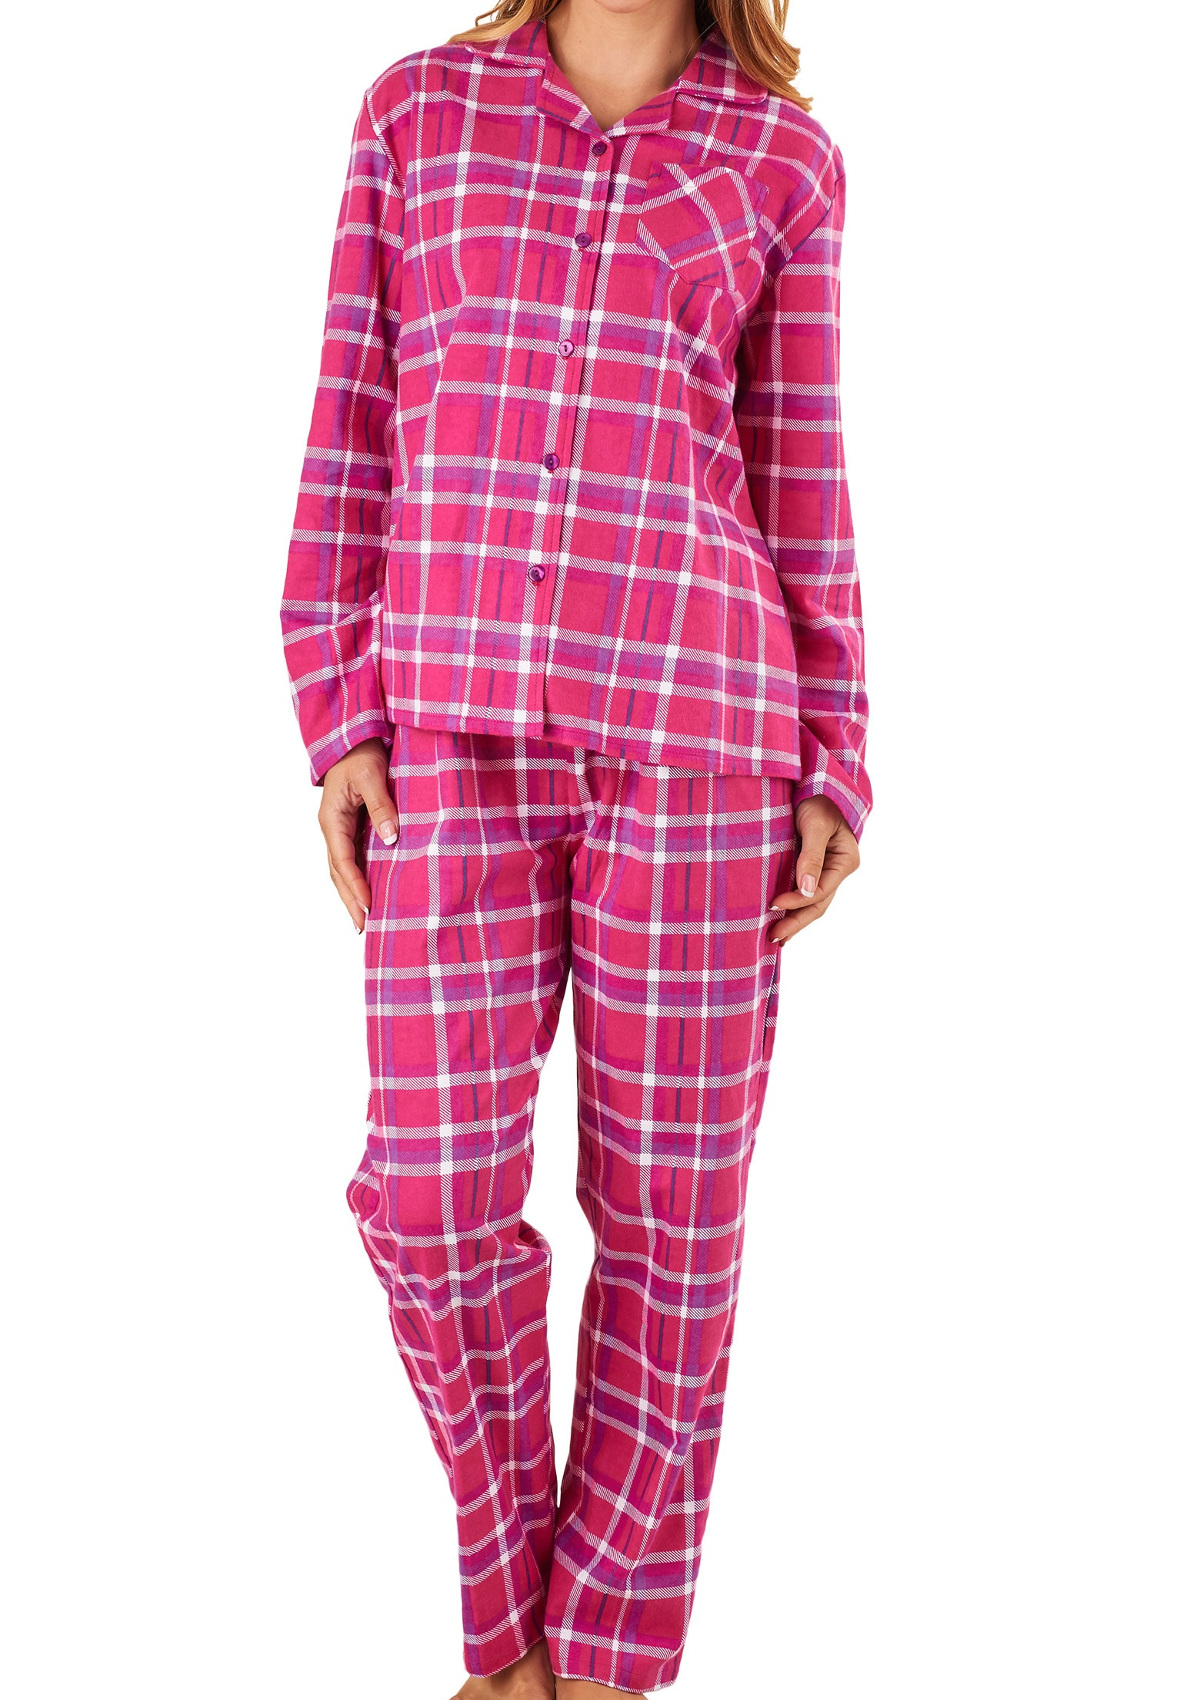 From the softest dressing gowns to silk and satin pyjama tops and shorts, our collection of women's nightwear will help you relax in luxury. Choose from jersey pyjama jumpsuits and onesies to fluffy slipper sets, for sleepwear that's both cosy and chic.